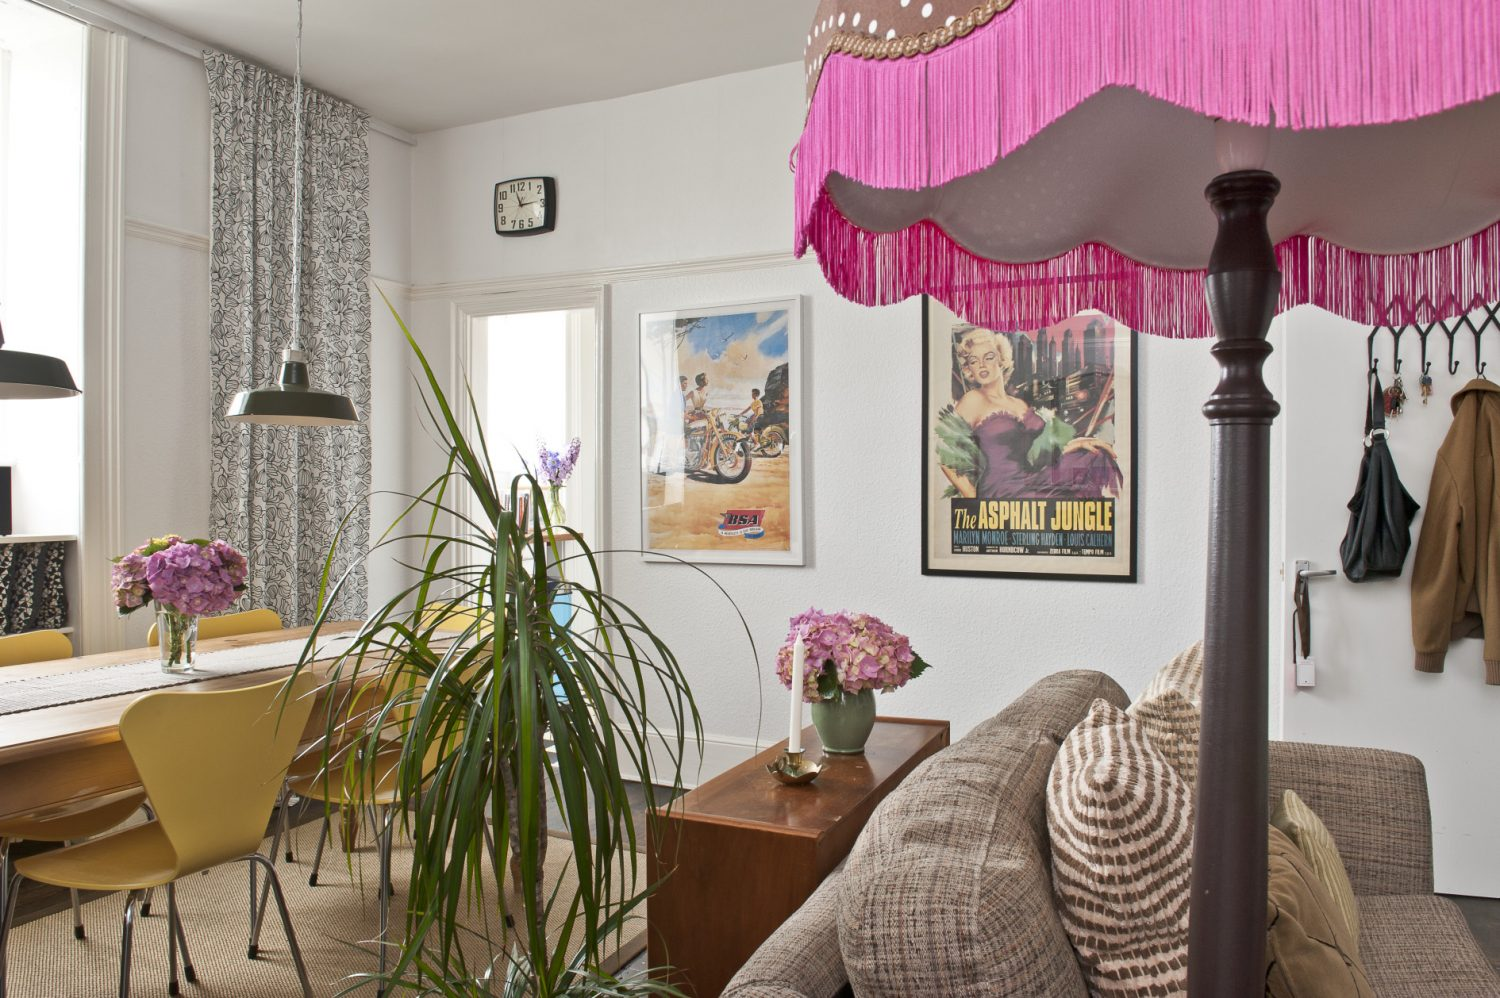 Charlotte's flat's main reception room is subtly divided into a sitting and dining room merely by the arrangement of furniture. On a long wall hangs a 1950s advertising poster for BSA motorcycles. Next to it is another icon of 50s glamour – Marilyn Monroe reclines seductively on a film poster for The Asphalt Jungle.